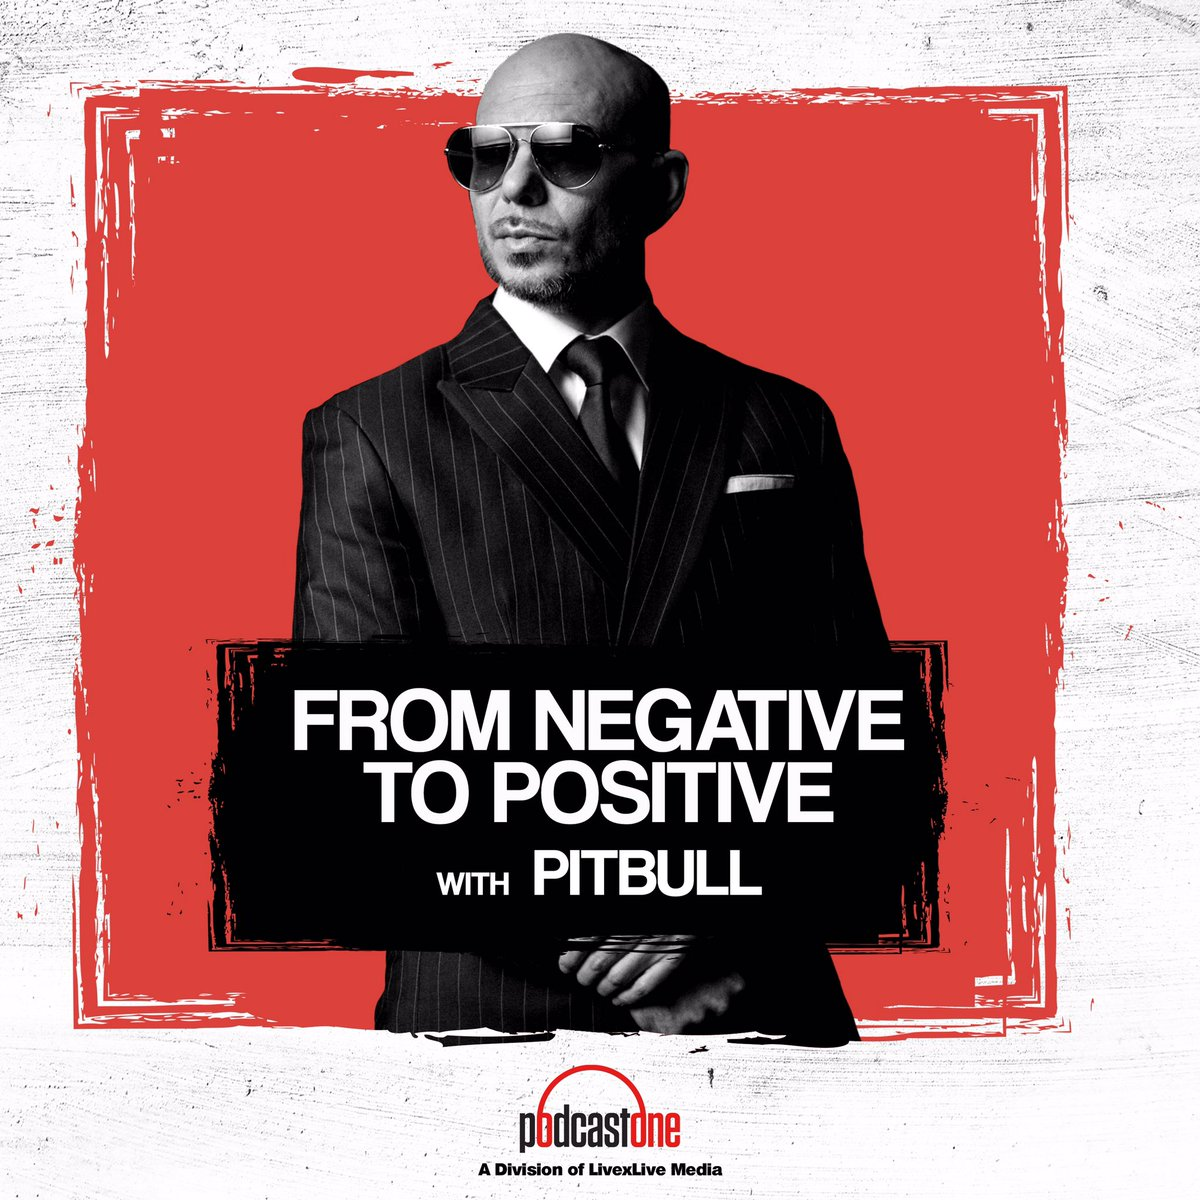 "#NEWS The brand new @Pitbull's Podcast ""From Negative to Positive"" featuring @EmilioEstefanJr is OUT NOW! #FromNegativeToPositive #MrWorldwide #Pitbull ⠀⠀⠀⠀⠀⠀⠀⠀⠀ Listen to it here:"